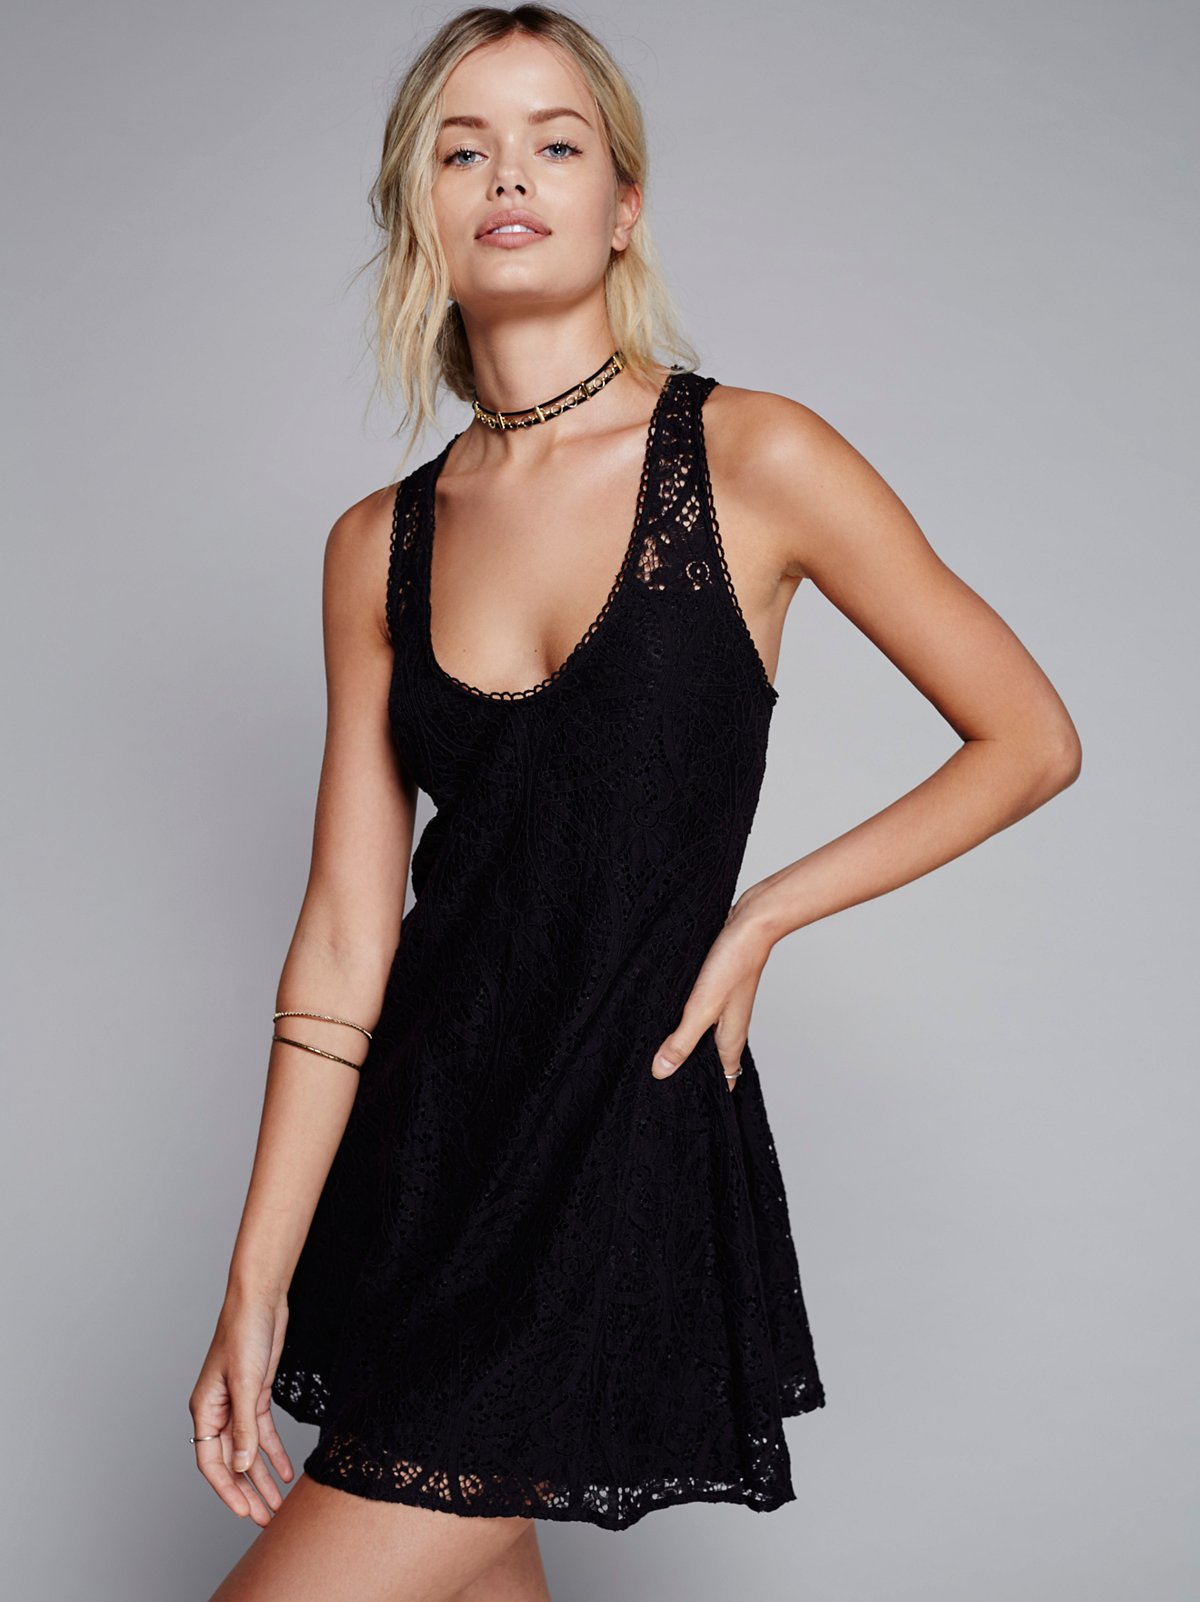 Voop Lace Mini Dress